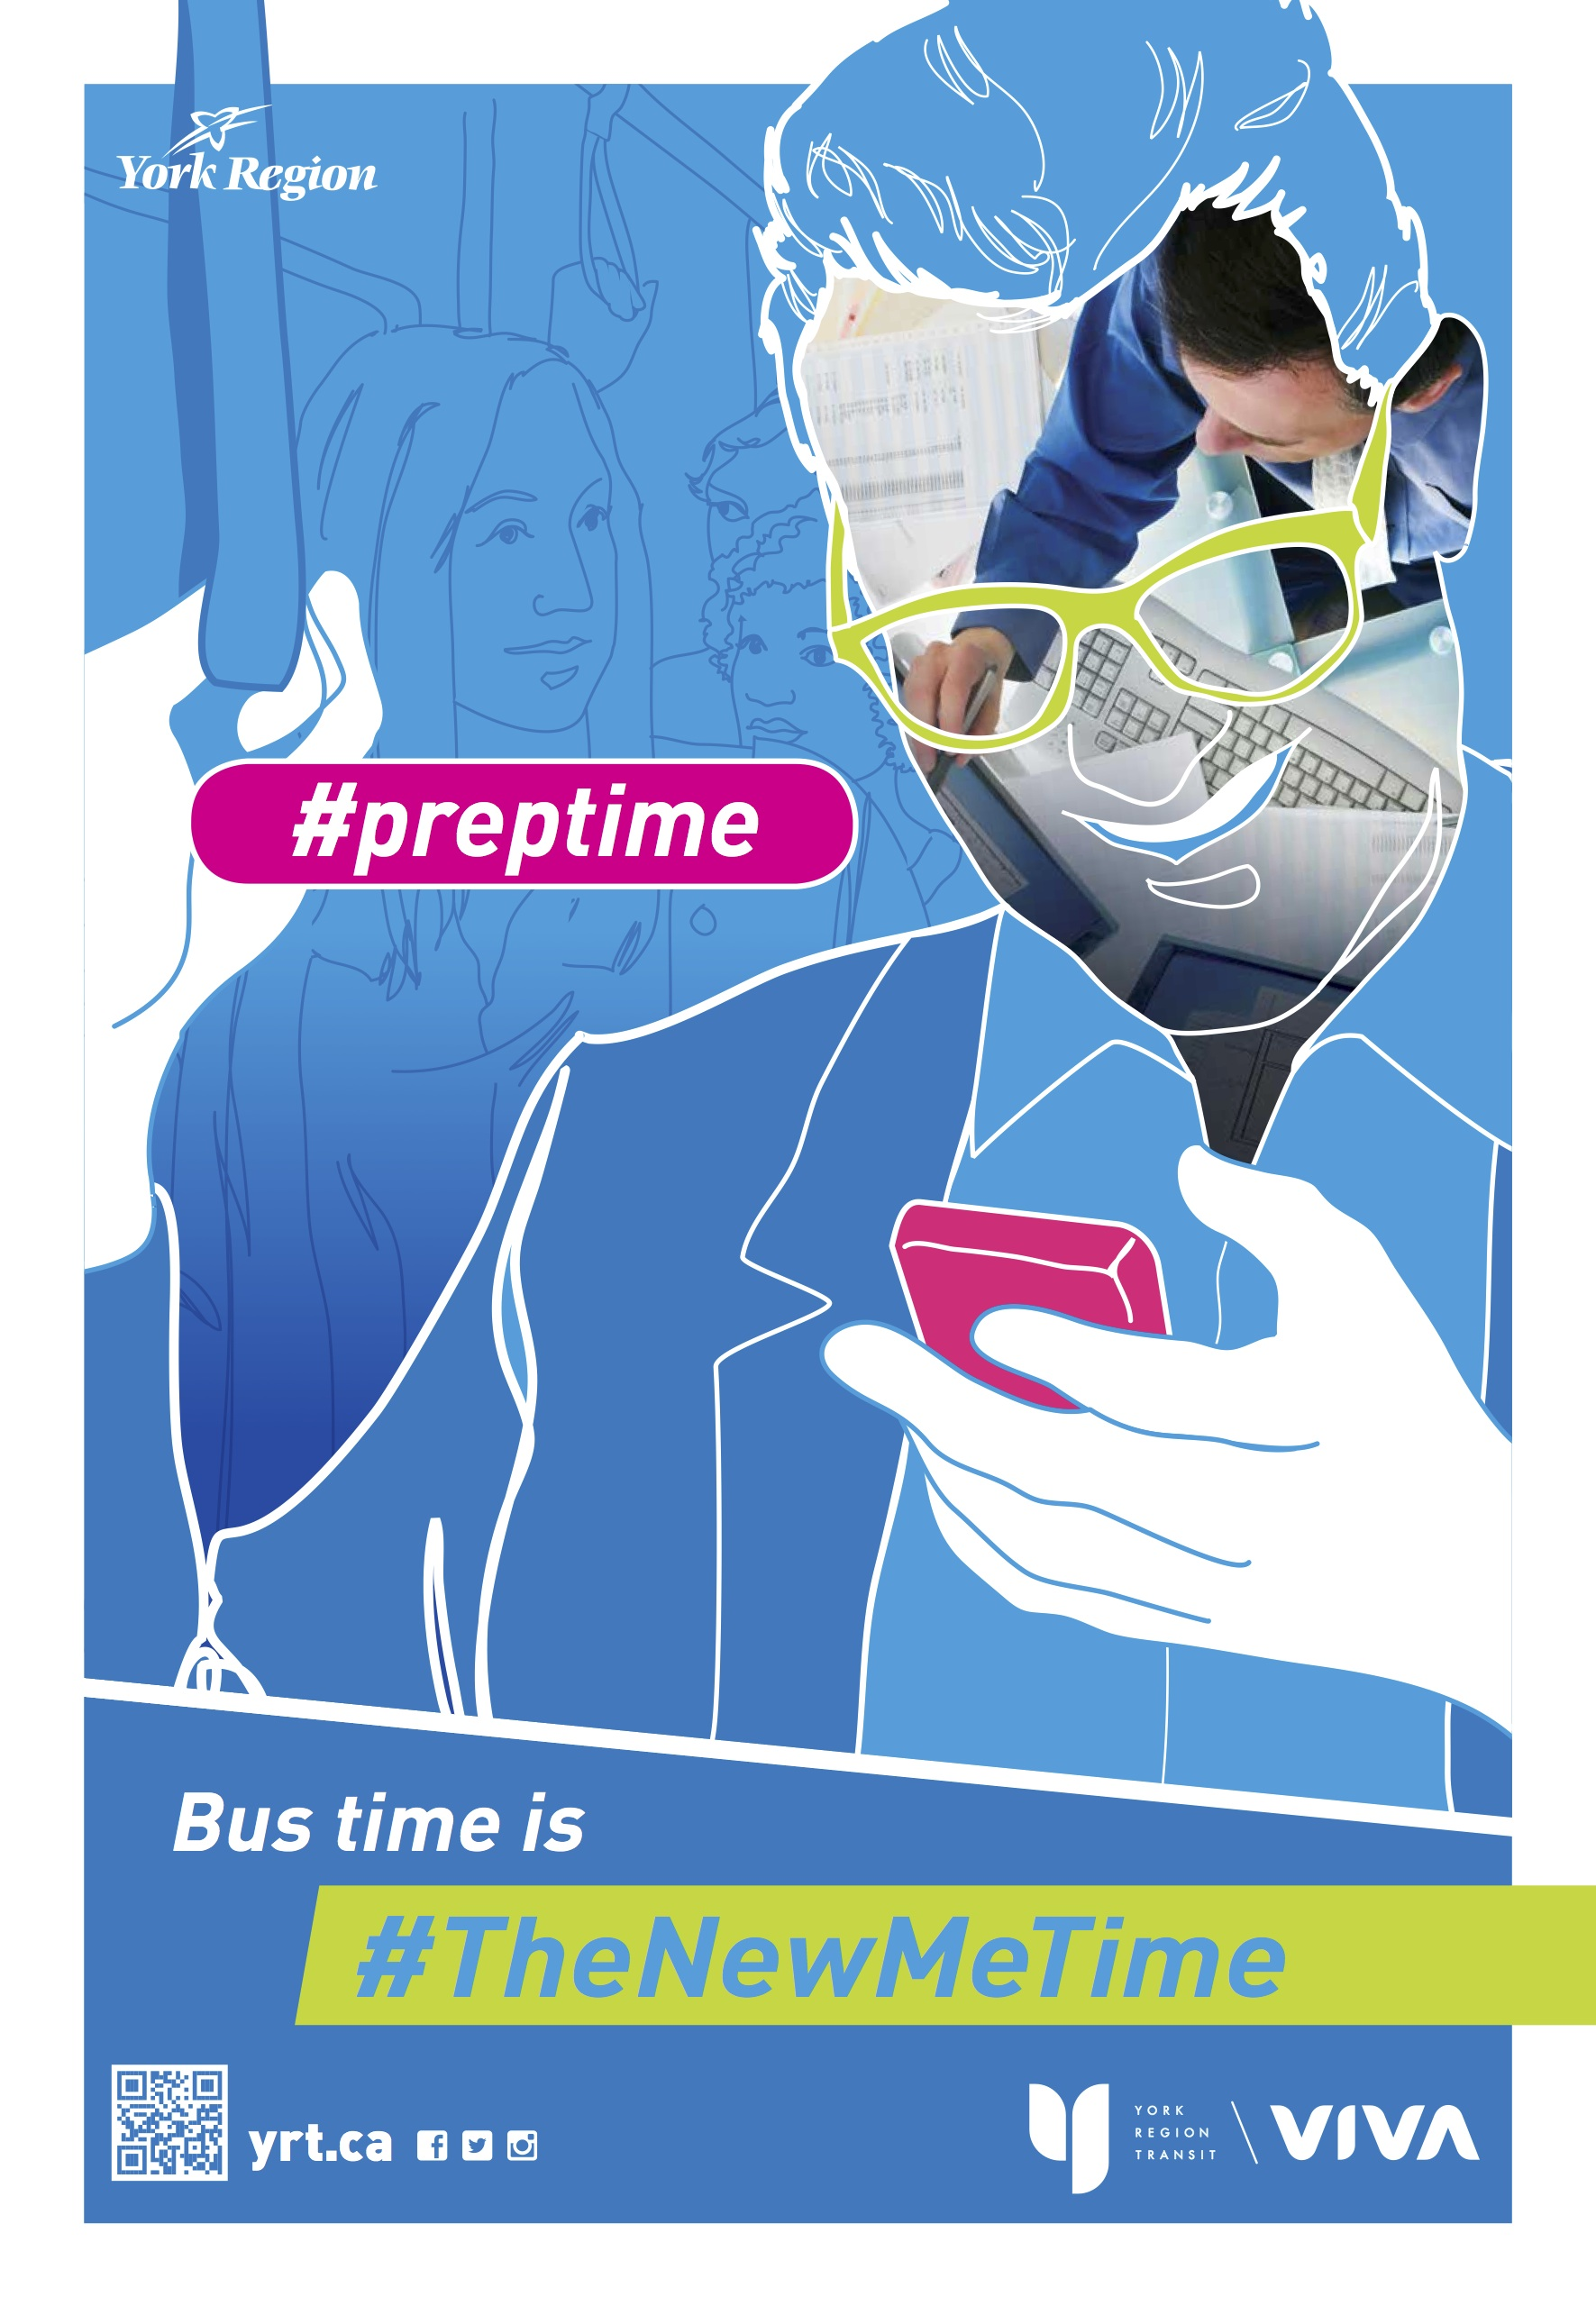 York Region Transit Poster - Preptime: Bus time is the new me time